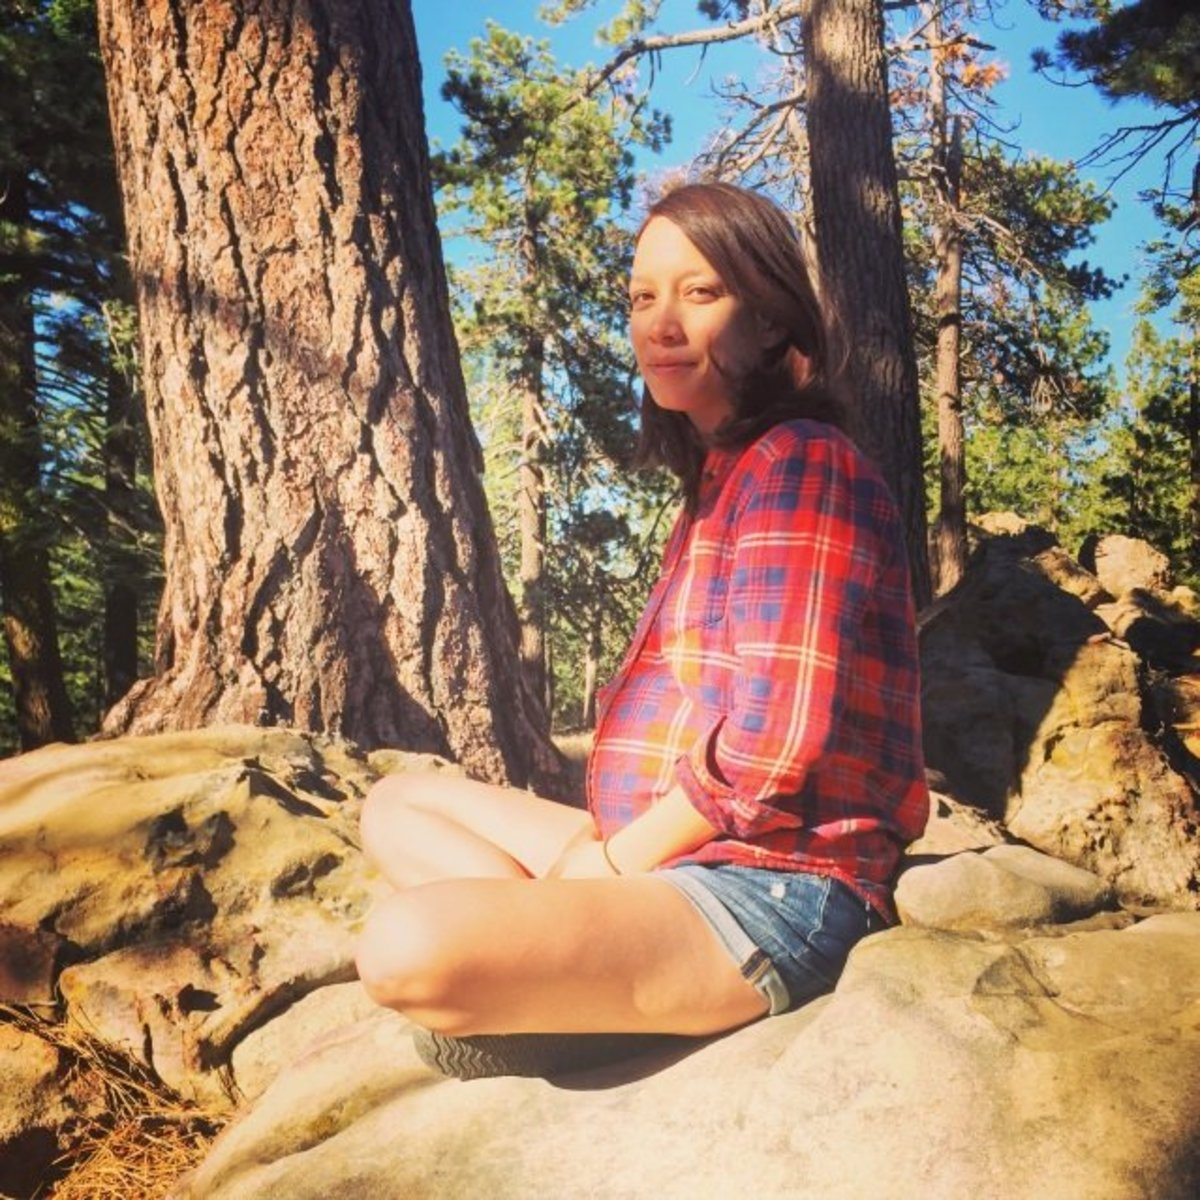 camping-while-pregnant-a-thorough-guide